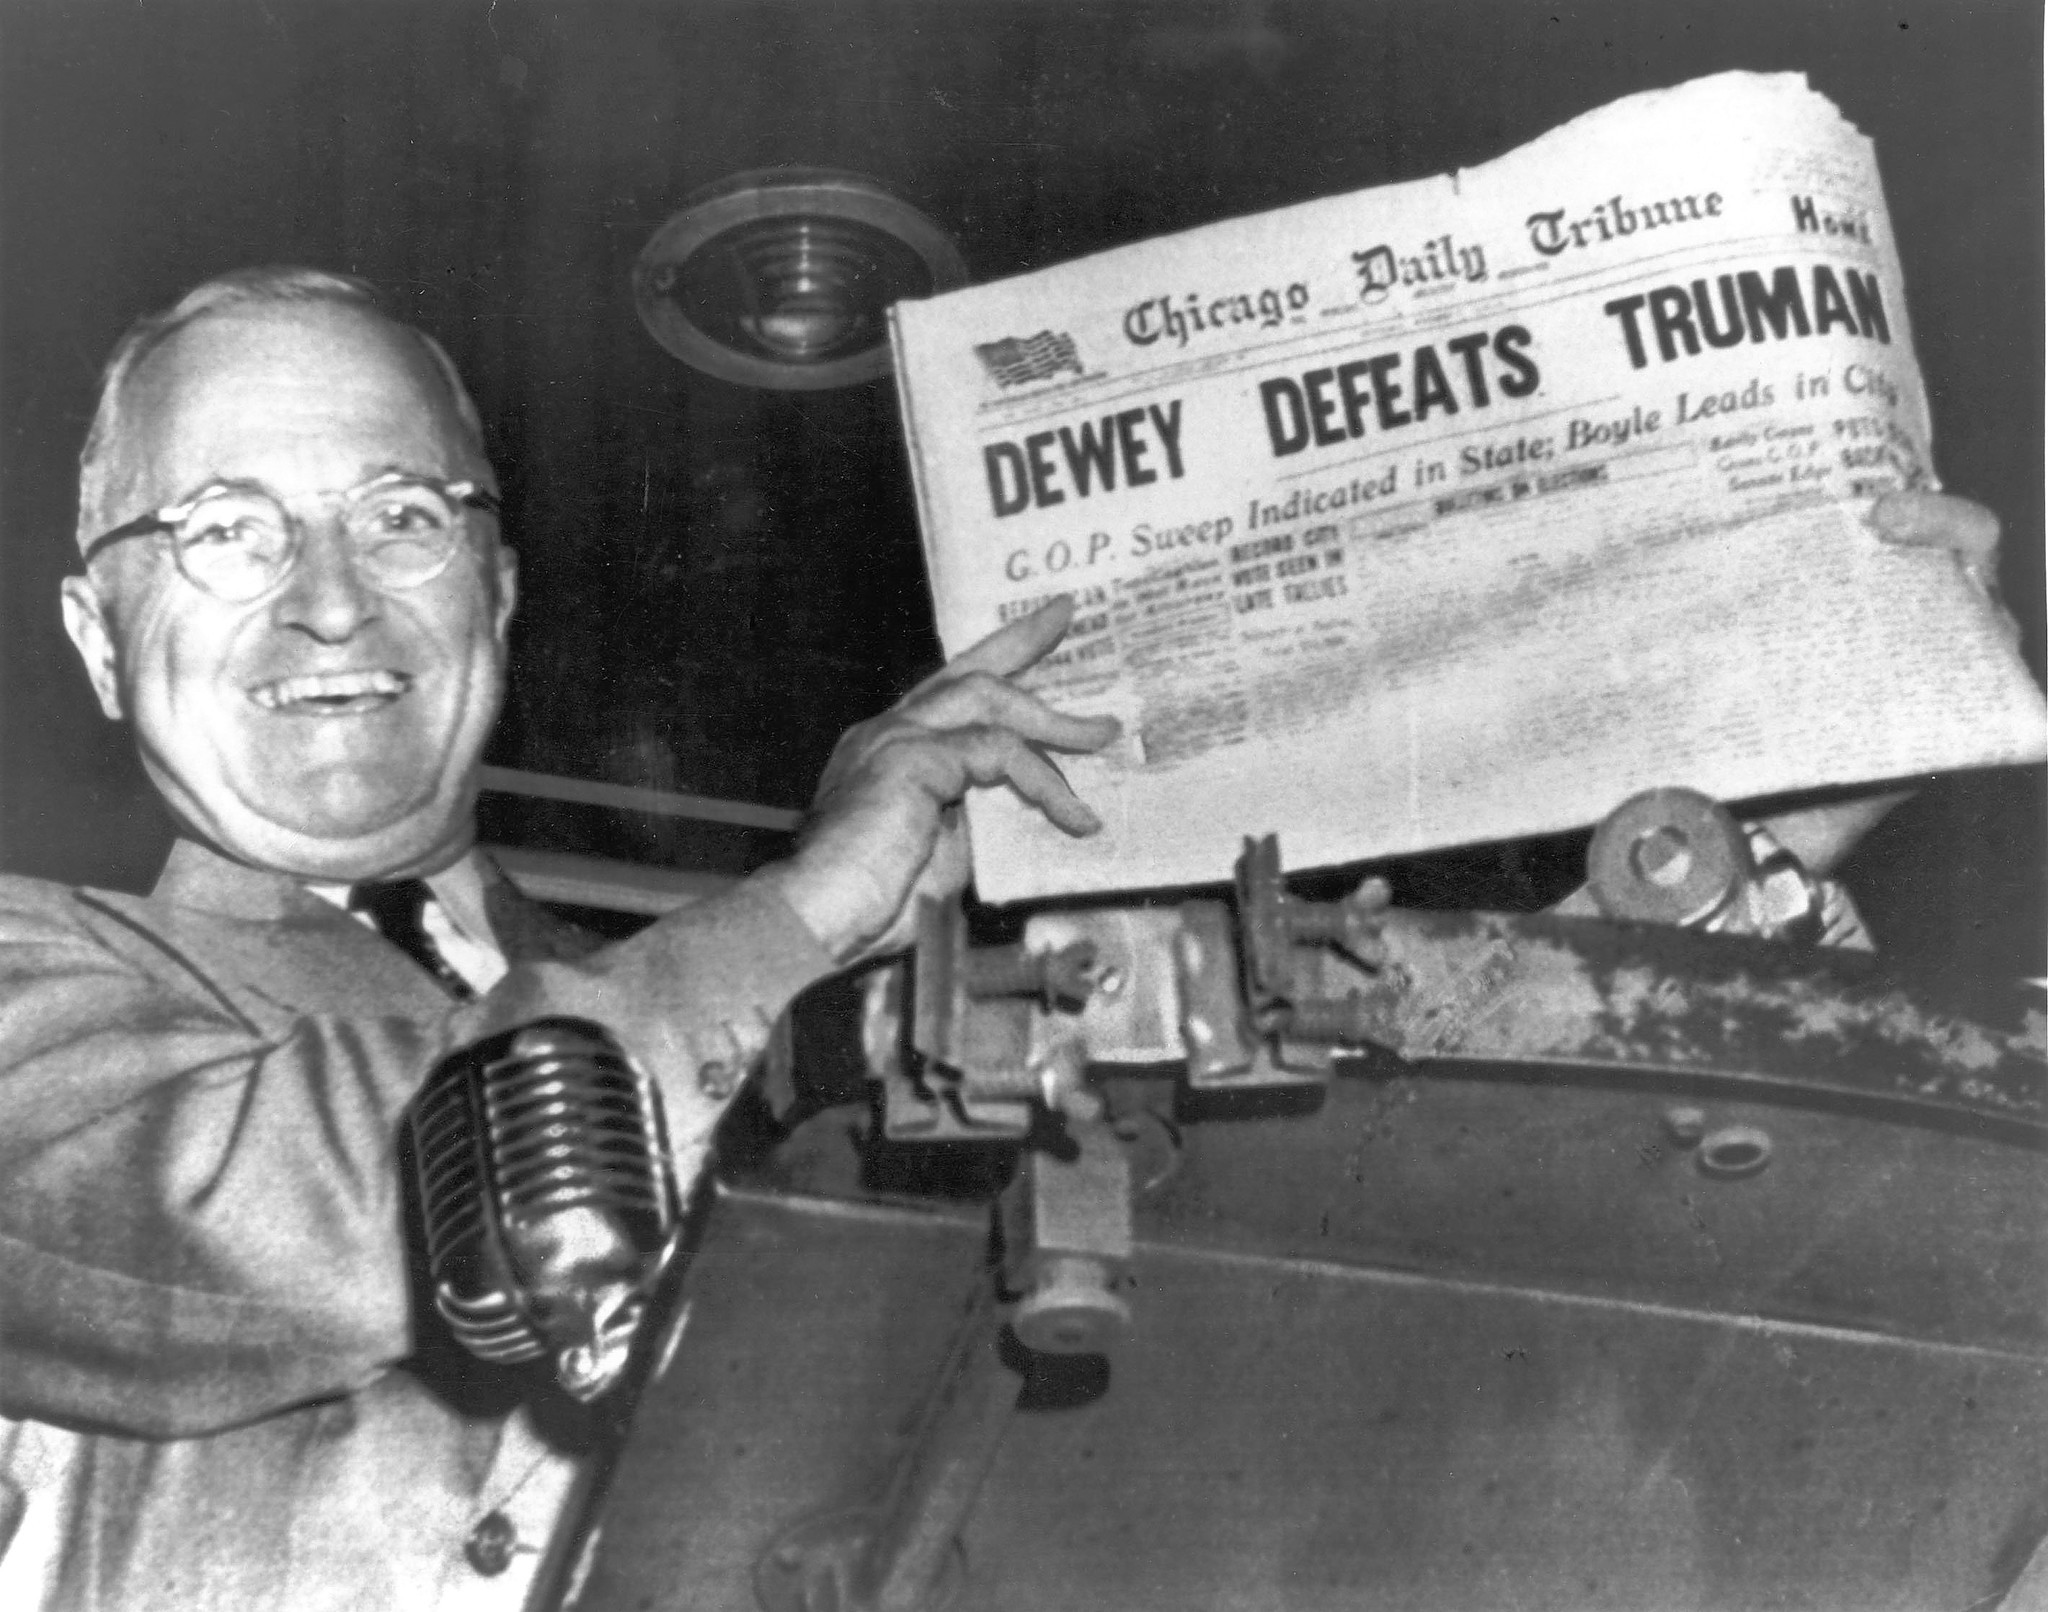 Harry S. Truman has the last laugh as he holds up a copy of the Chicago Daily Tribune at Union Station in St. Louis, Missouri, on November 3, 1948, after winning the election the previous day. He was so widely expected to lose that the Tribune ran this incorrect headline.